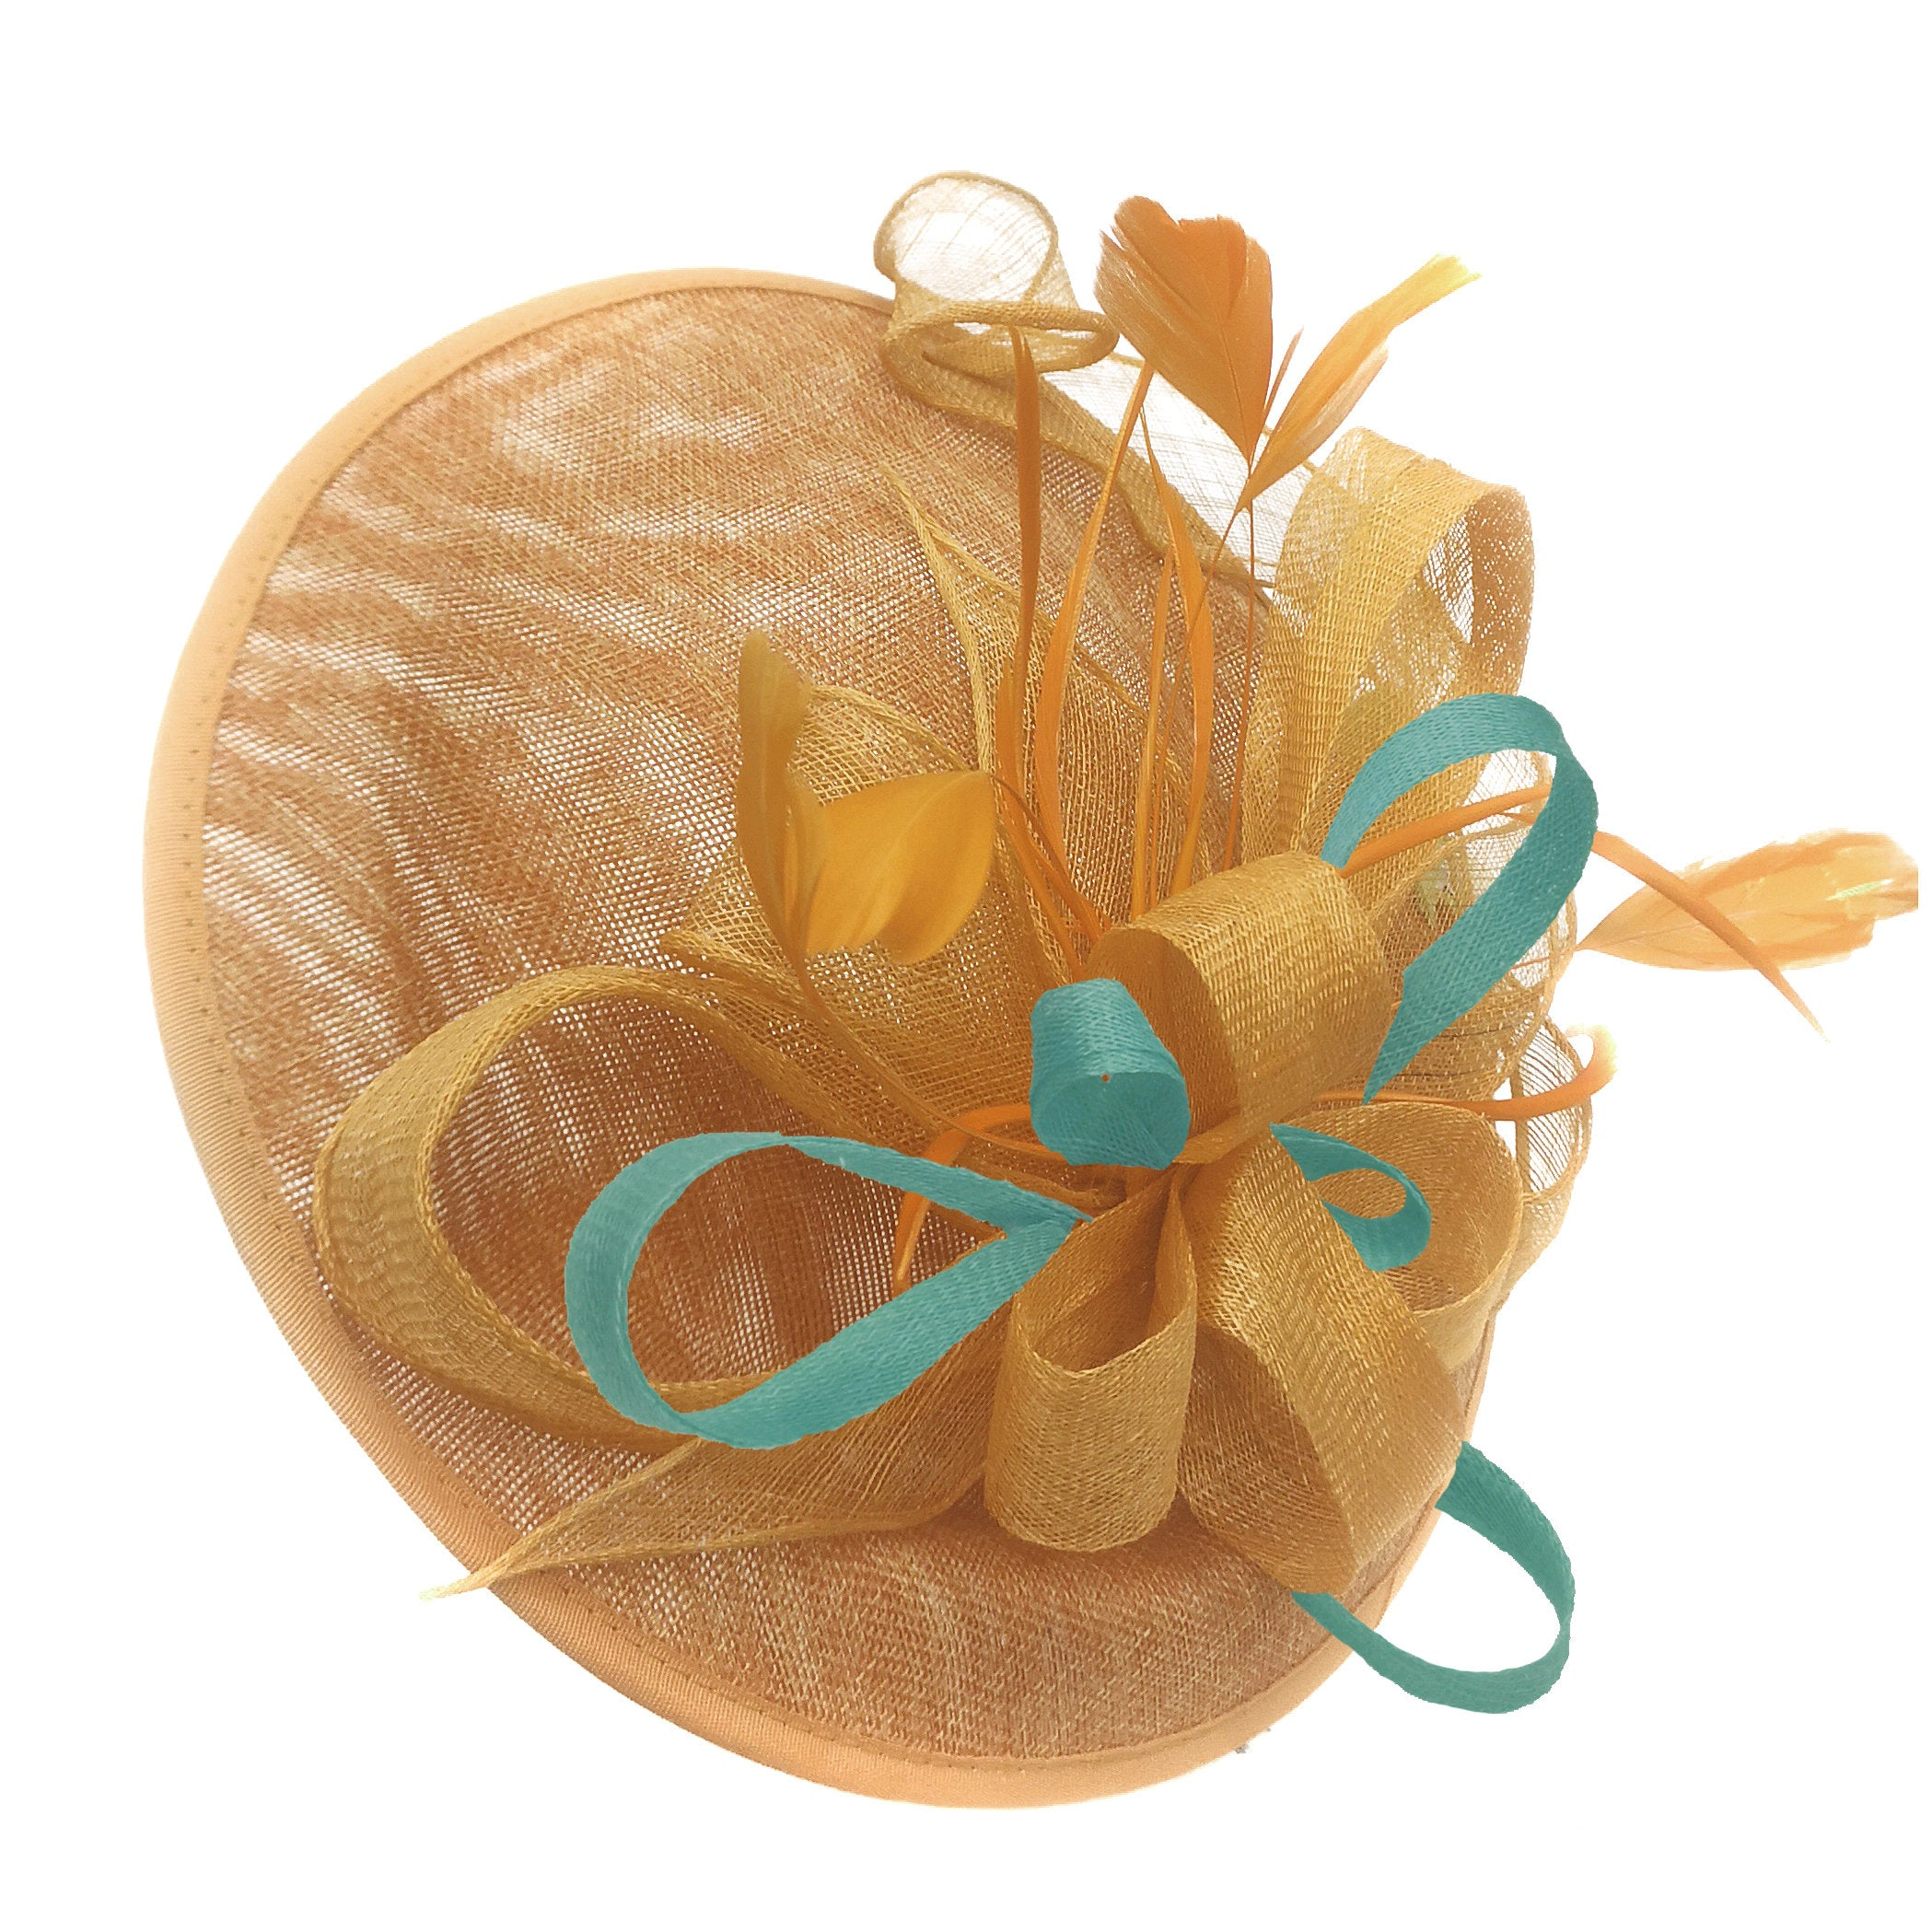 Caprilite Big Saucer Sinamay Gold Mustard & Light Turquoise Mixed Colour Fascinator On Headband